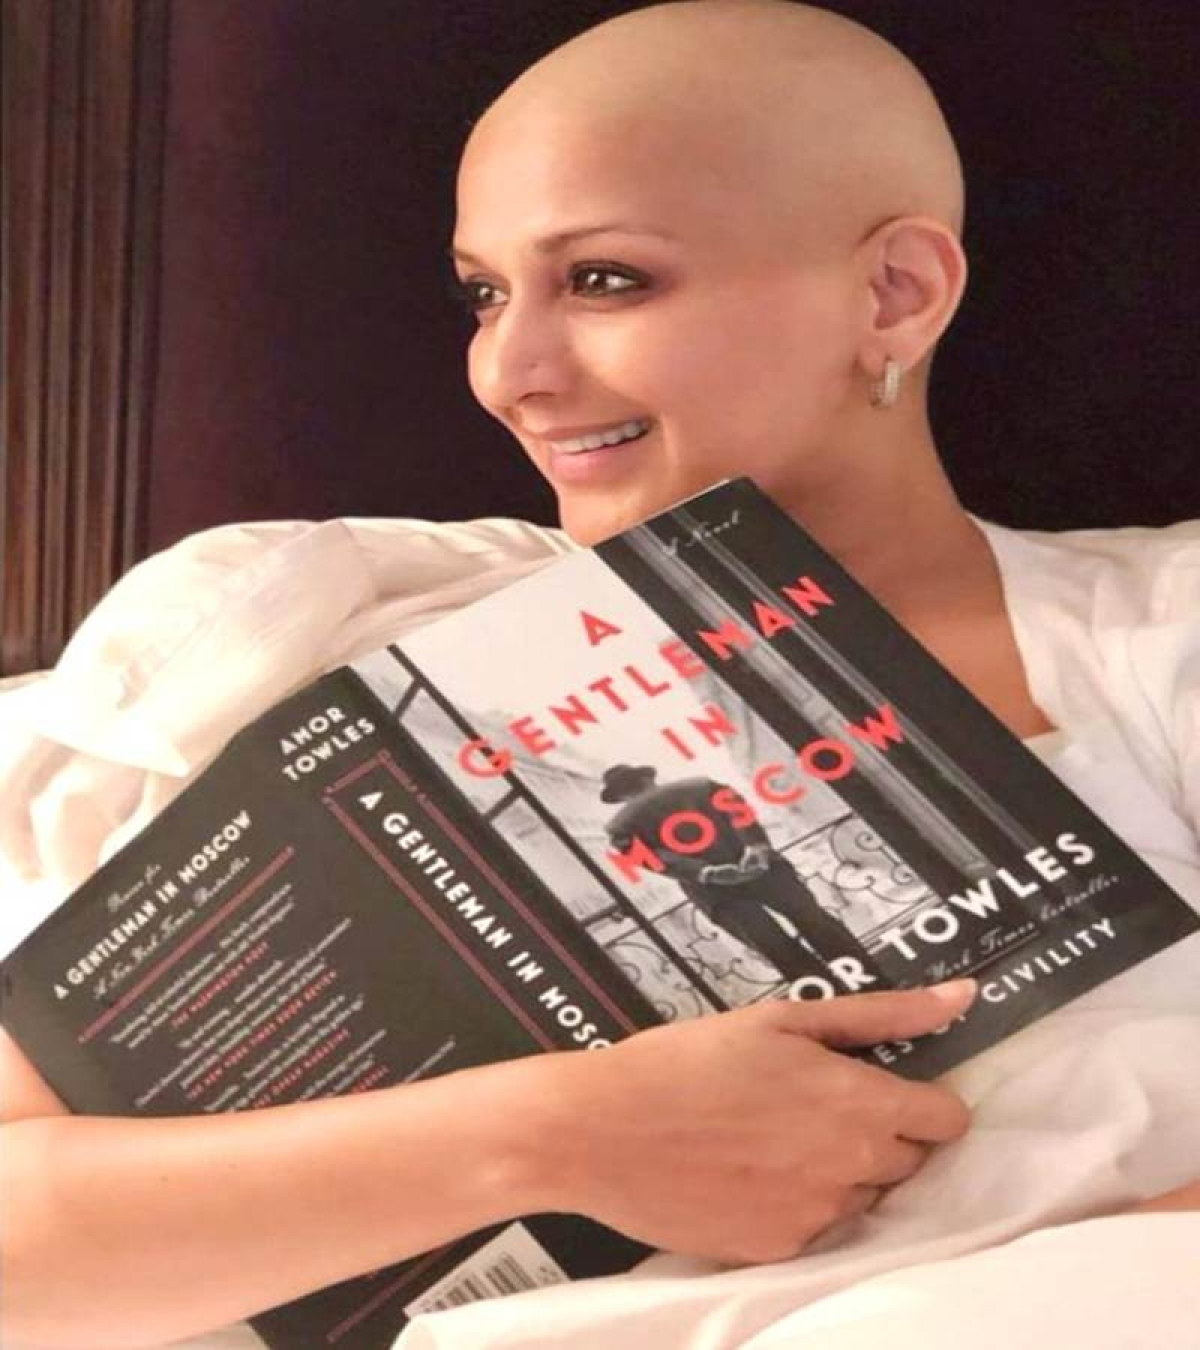 Amid cancer treatment, Sonali Bendre posts strong picture of herself celebrating 'Read A Book Day'